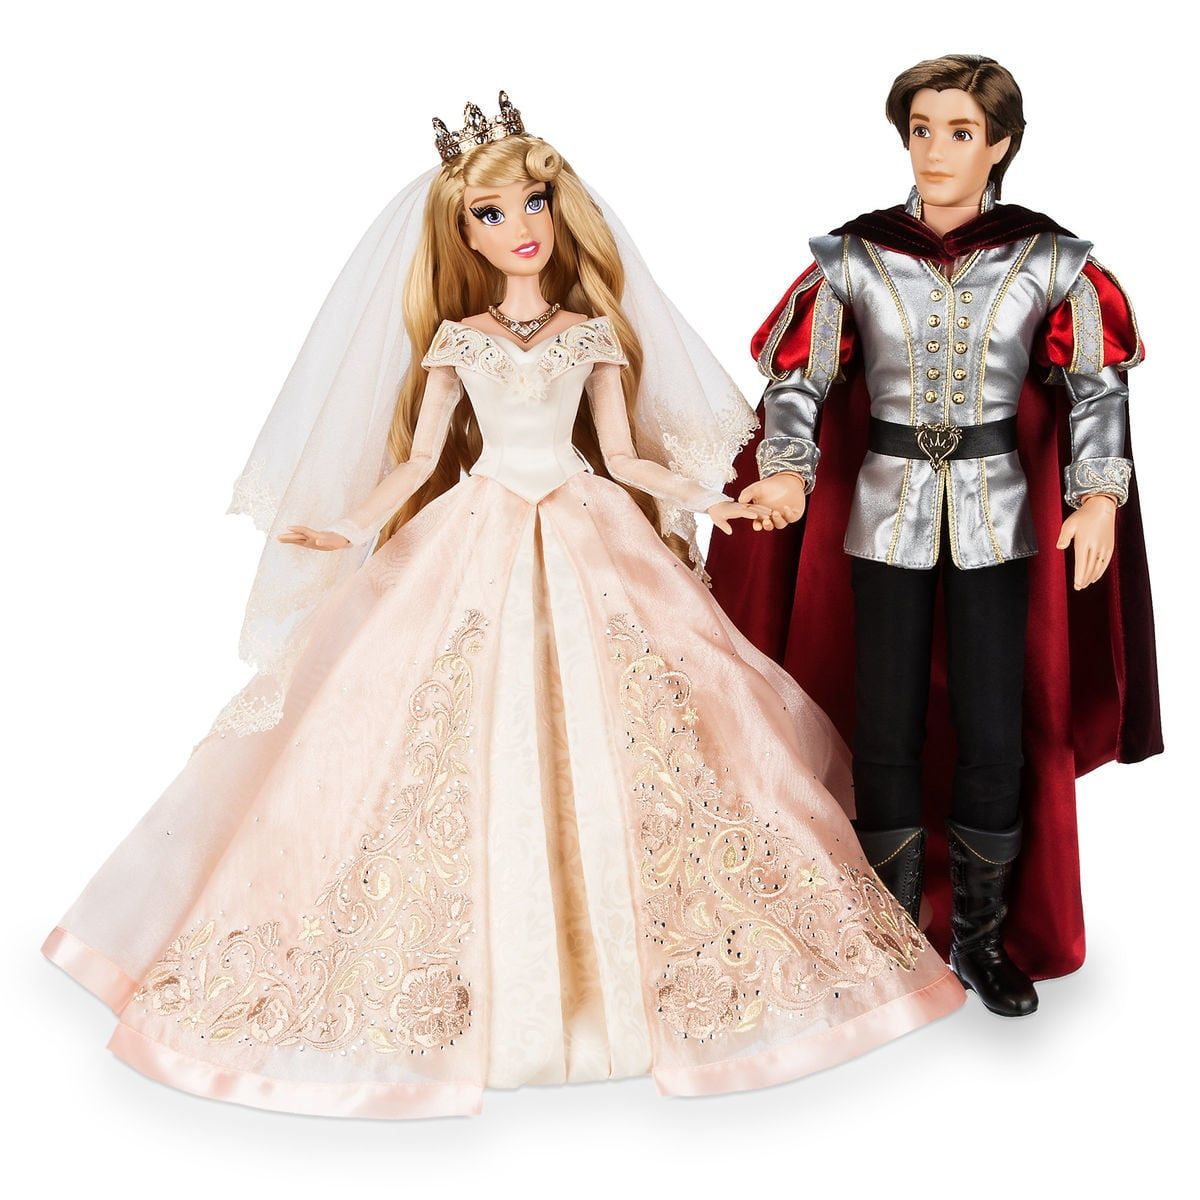 Aurora and prince phillip limited edition wedding doll set